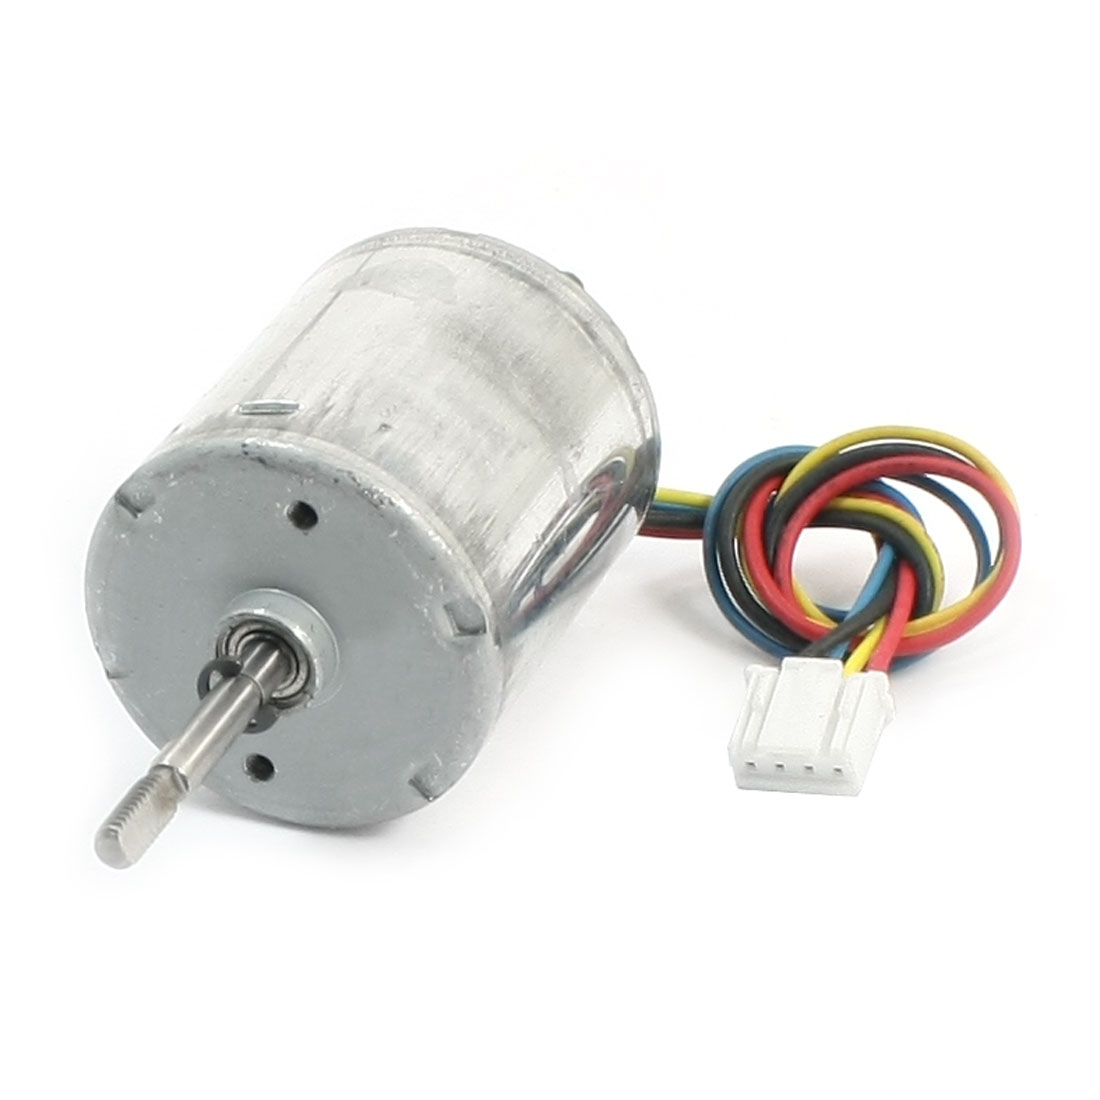 DIY Metal Shell 6V 5000R/MIN Output Dual 3mm Shaft Dia DC Motor